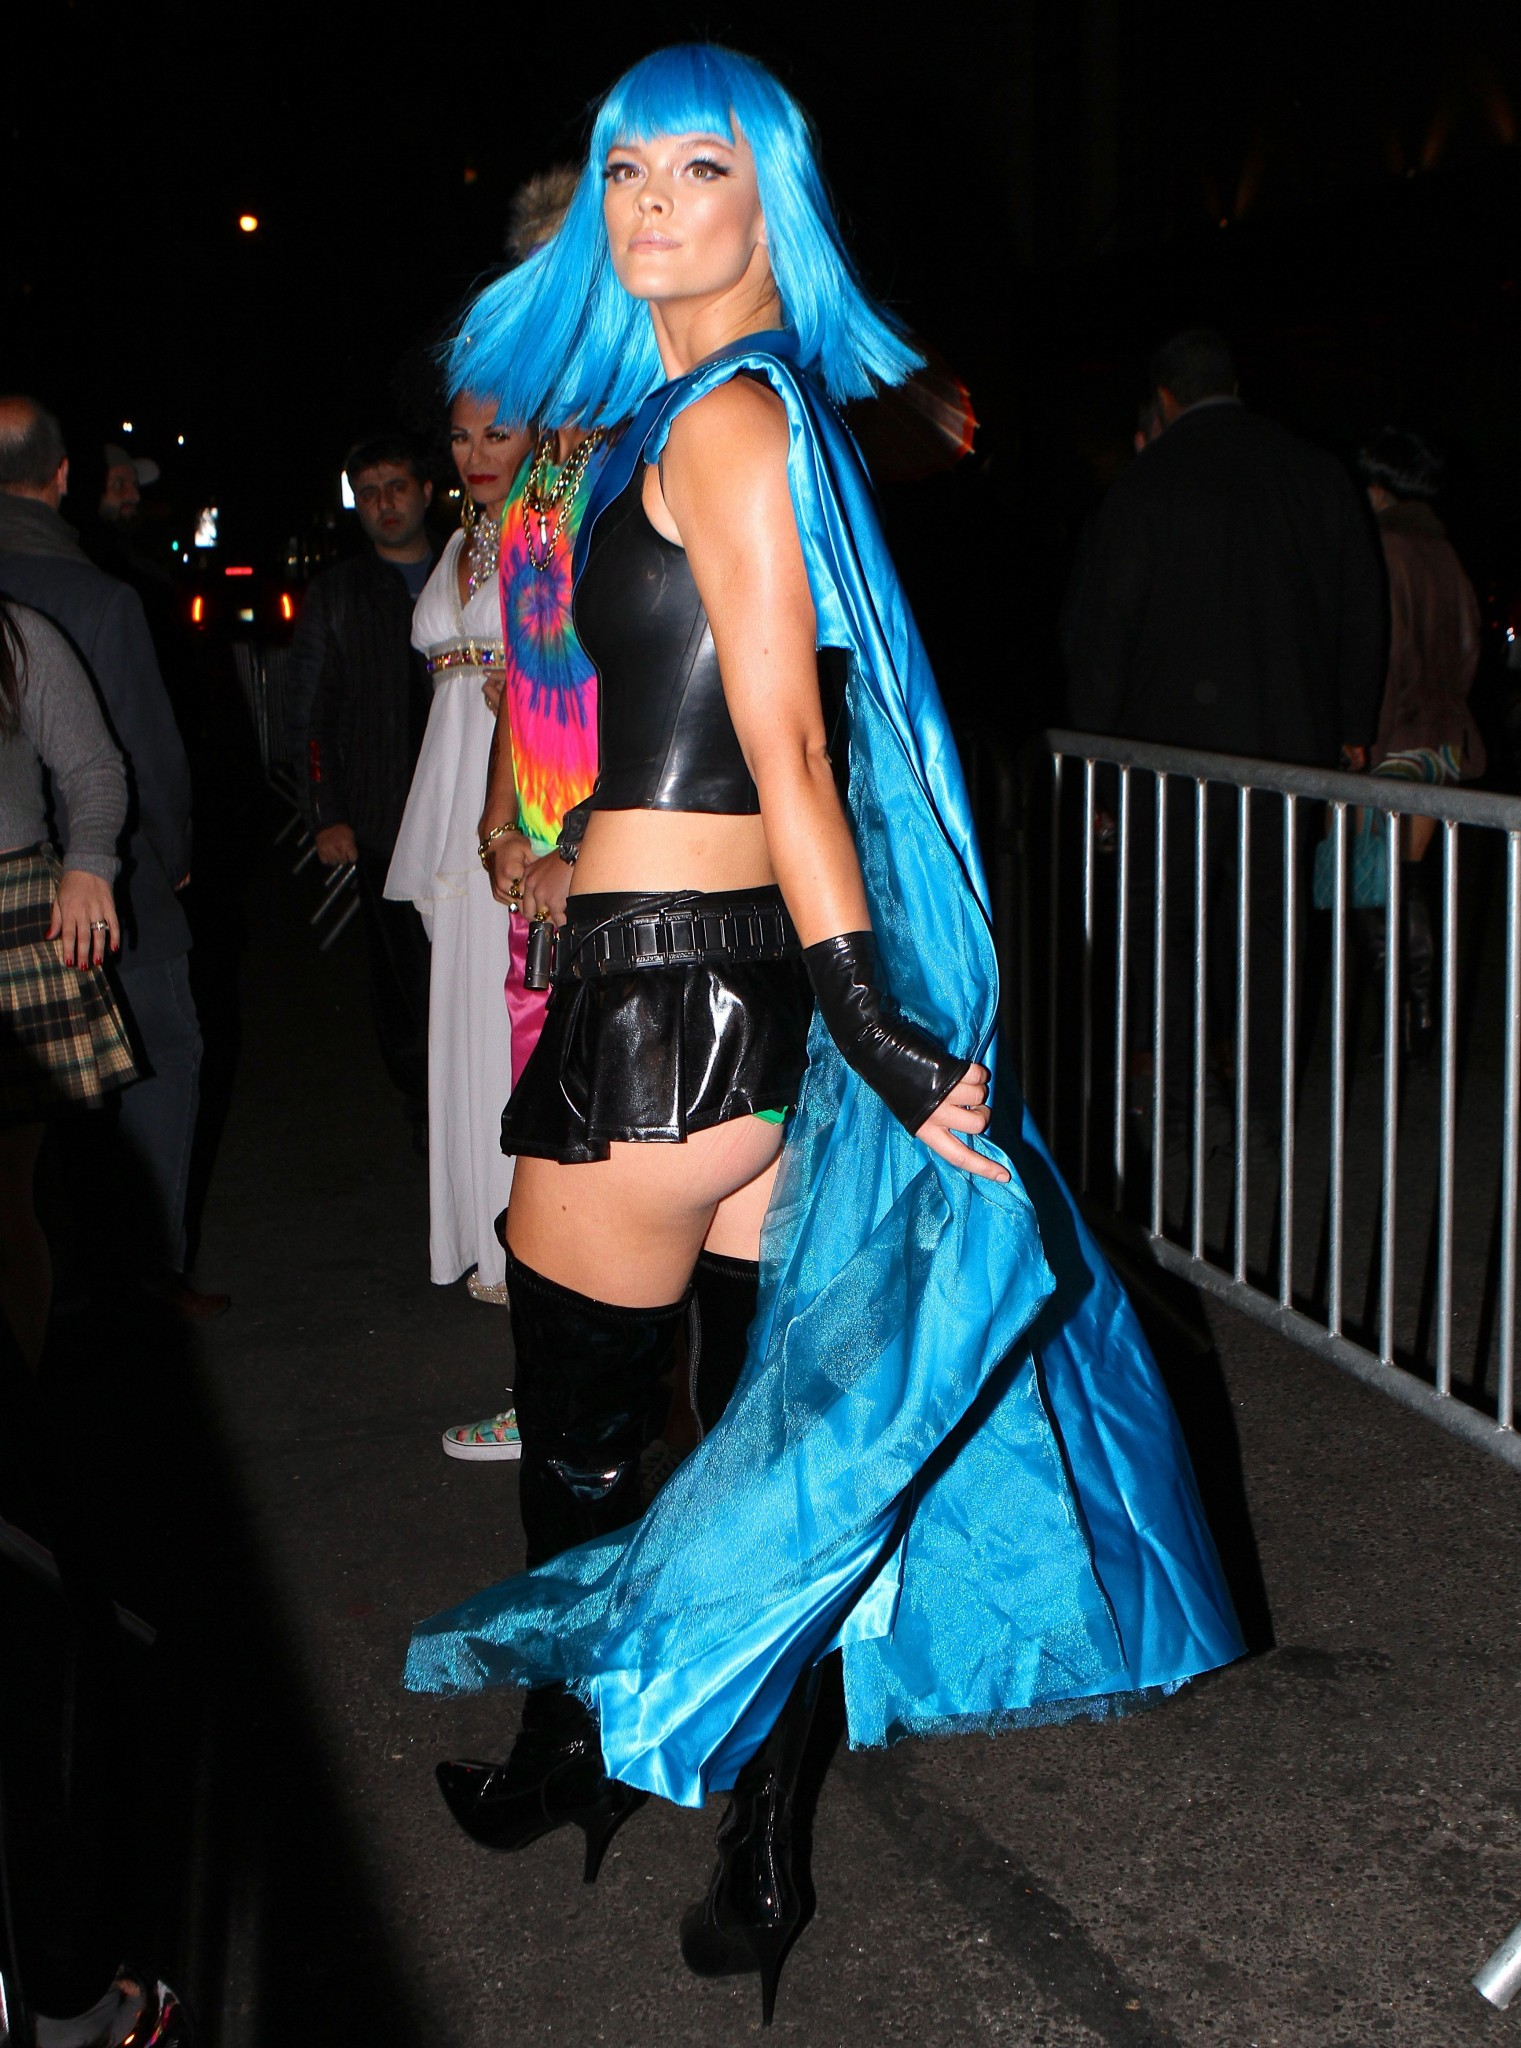 nina-agdal-ass-clevage-ass-cheeks-at-heidi-klum-s-halloween-party-09